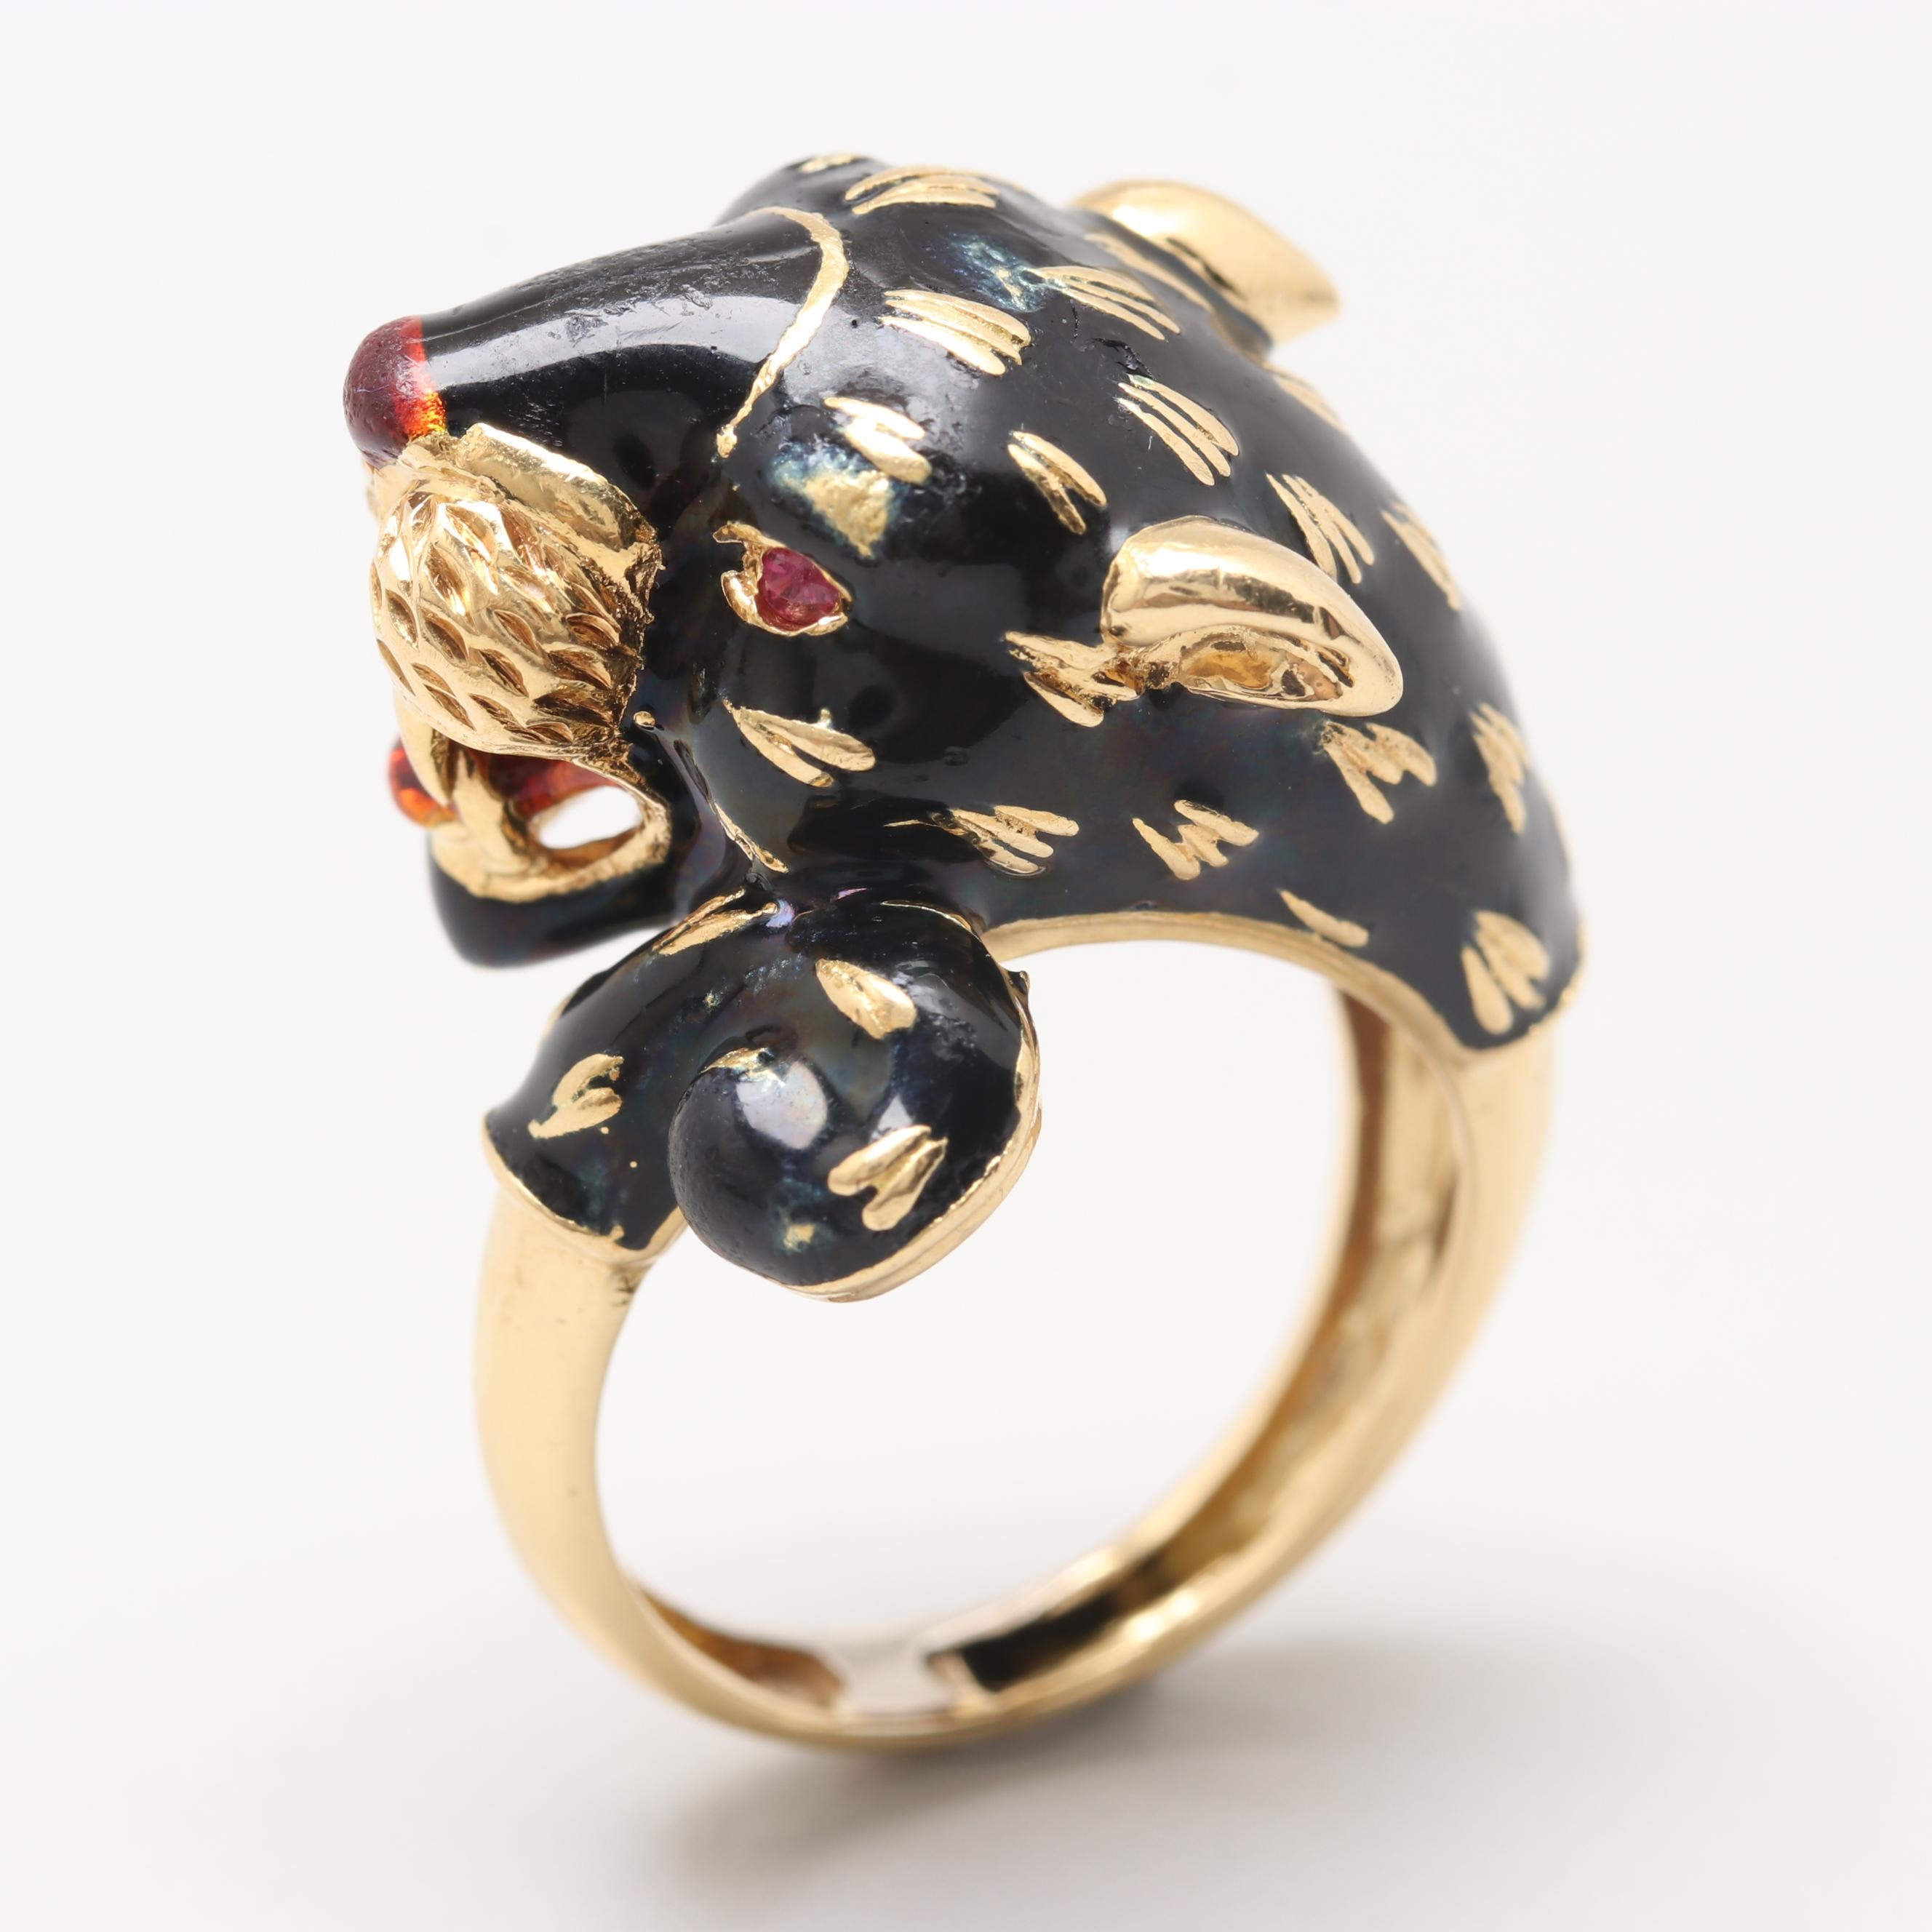 Circa 1960s Frascarolo Italy 18K Yellow Gold Enamel and Ruby Ring